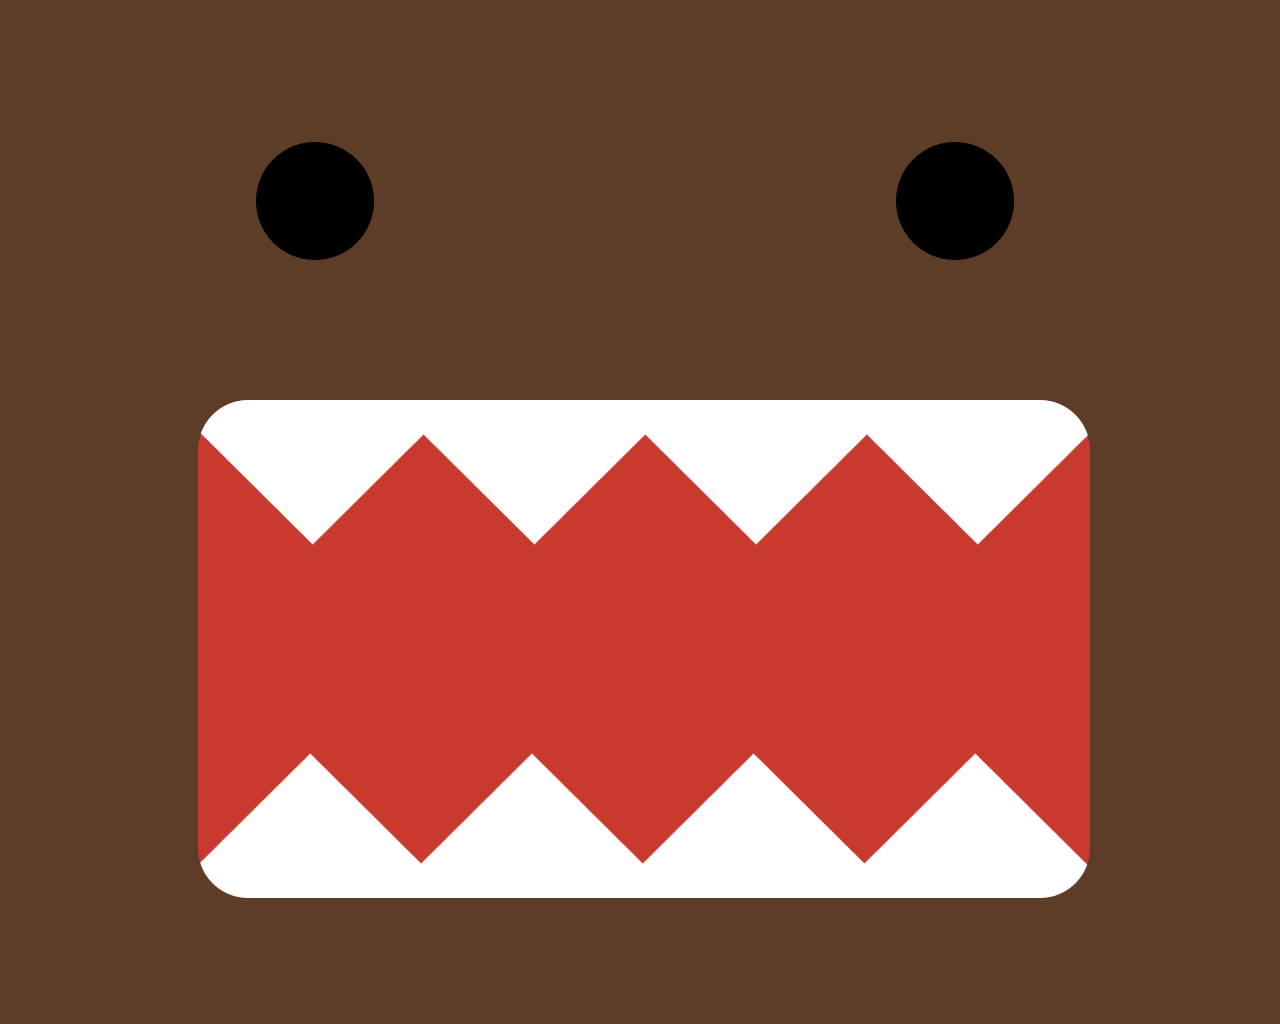 Domo-kun Wallpaper wallpapers